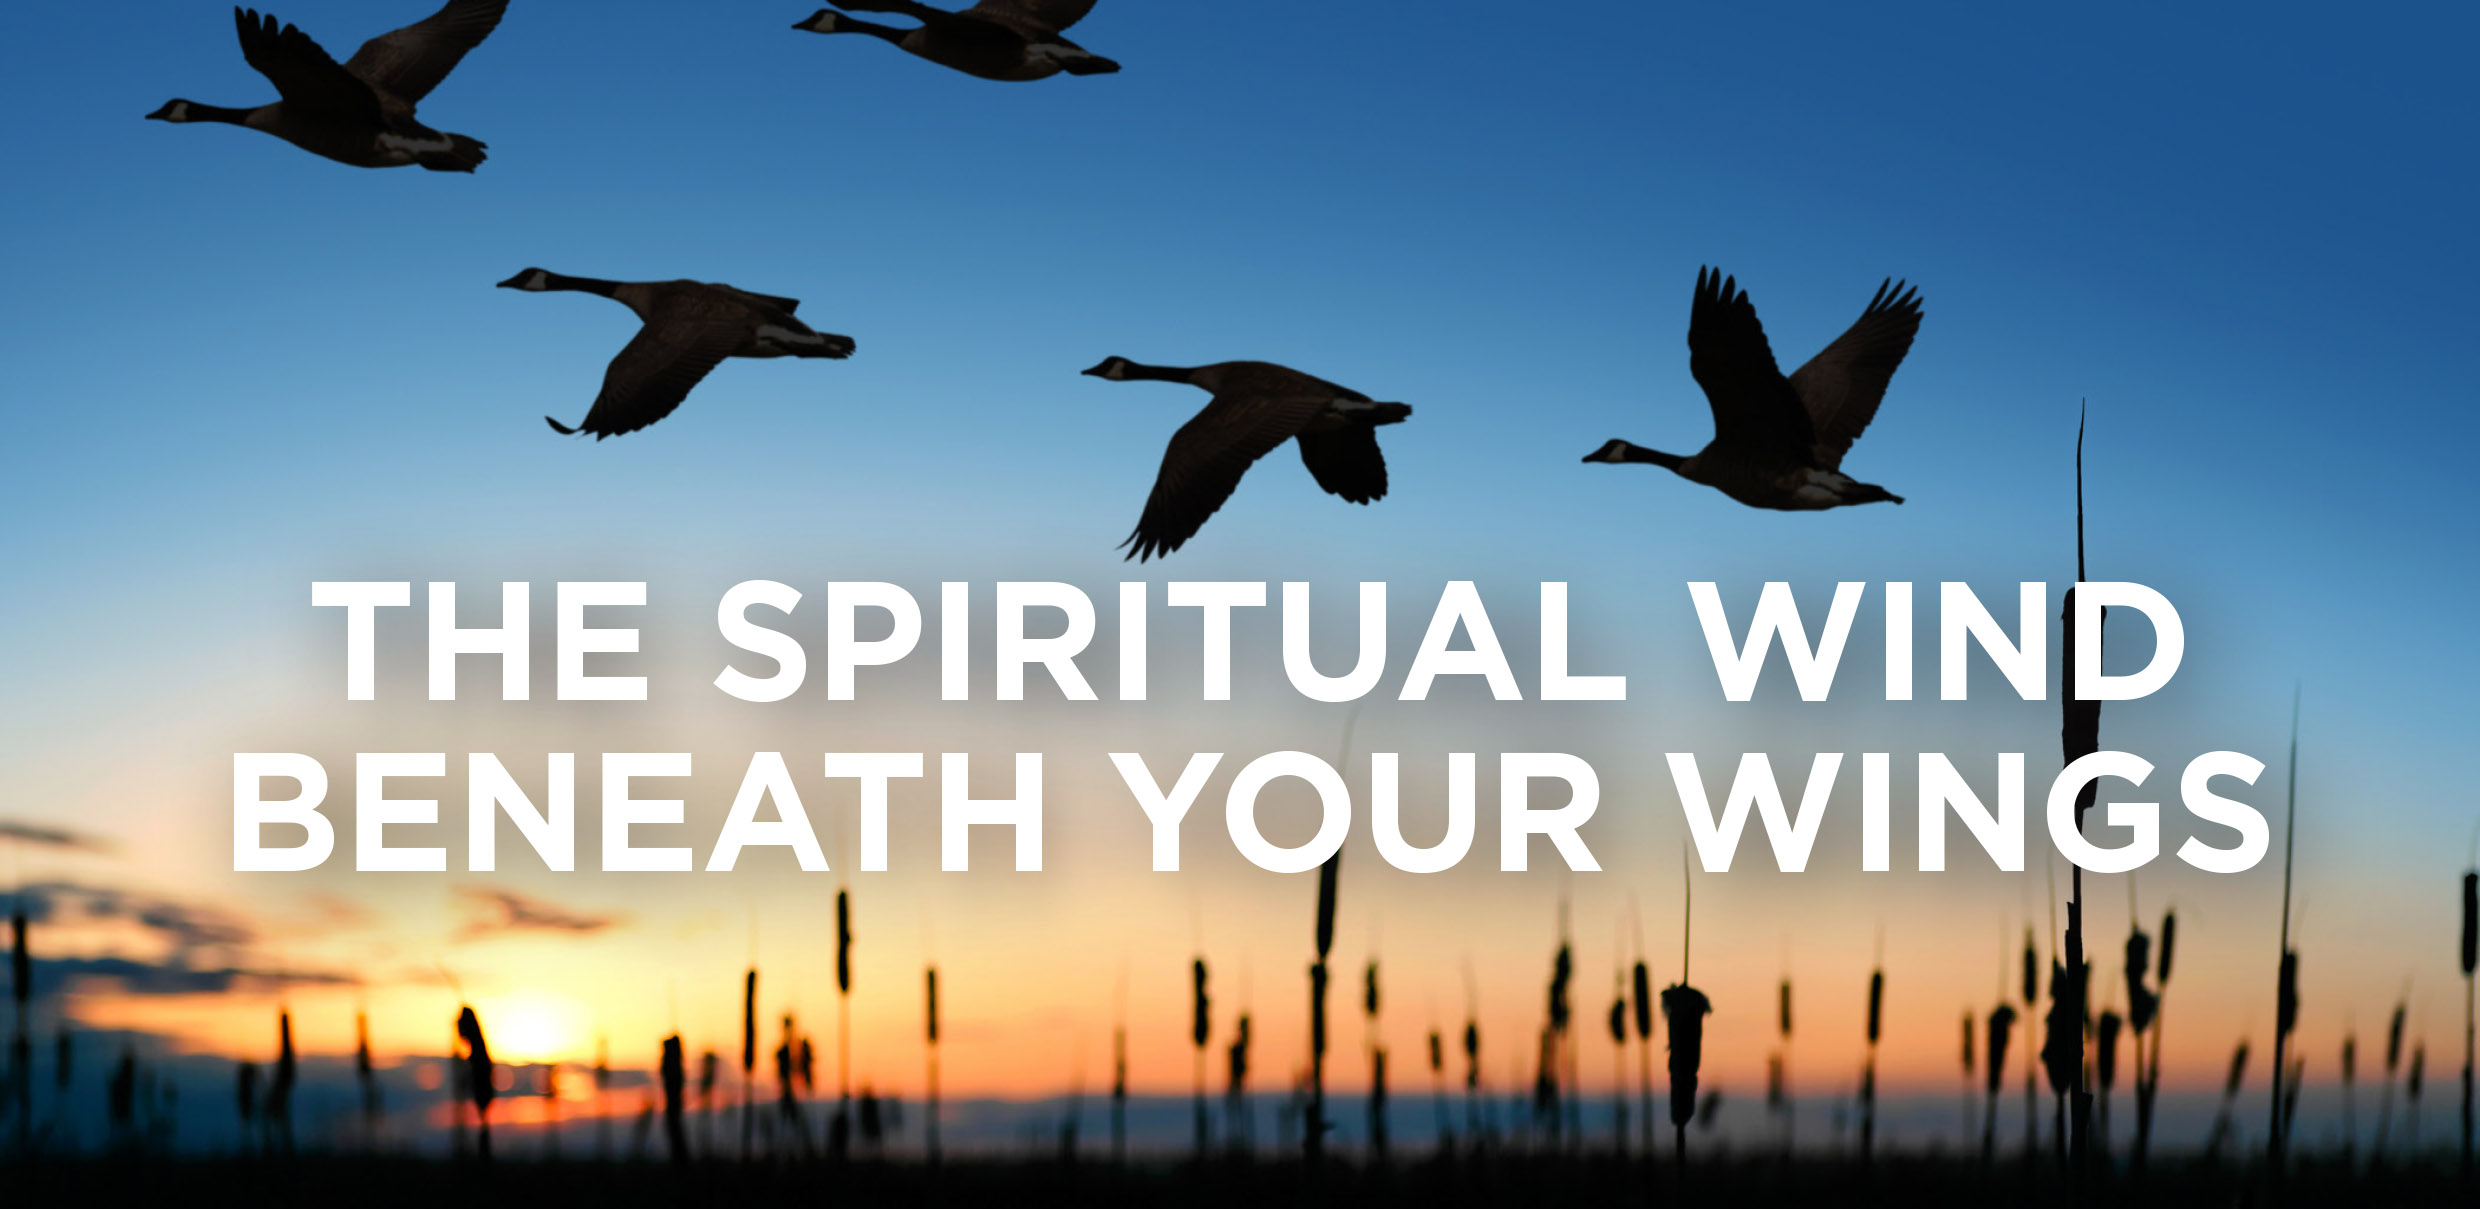 You are currently viewing The Spiritual Wind Beneath Your Wings